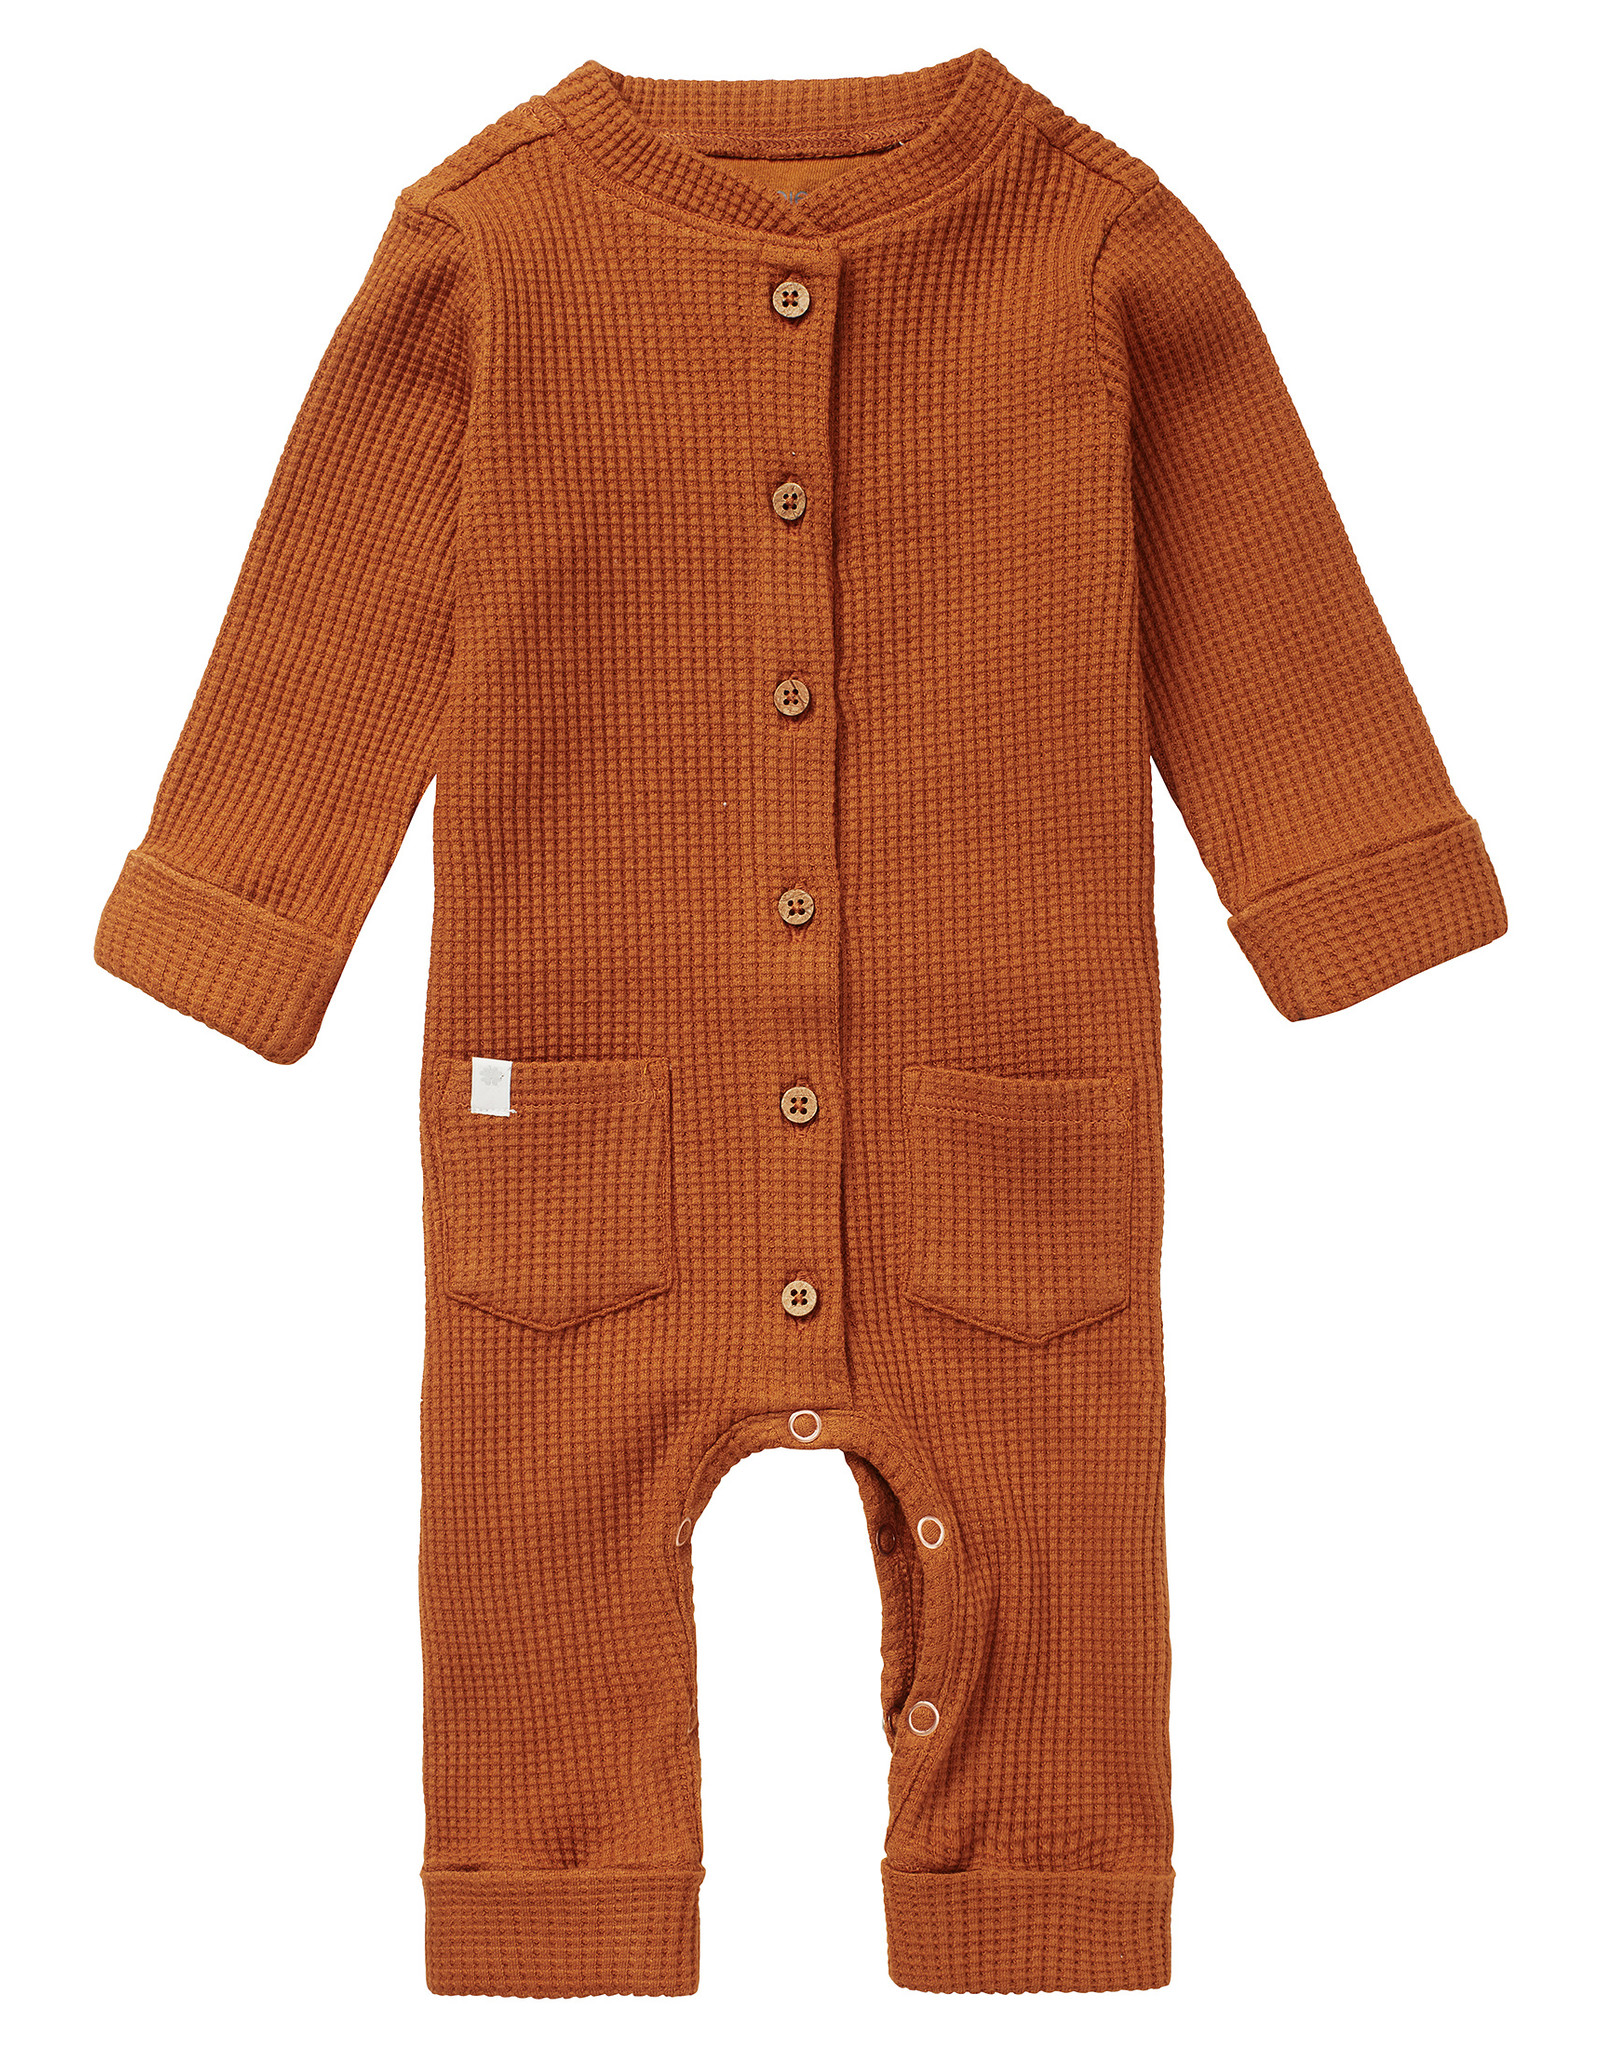 Noppies U Playsuit Shildon Roasted Pecan